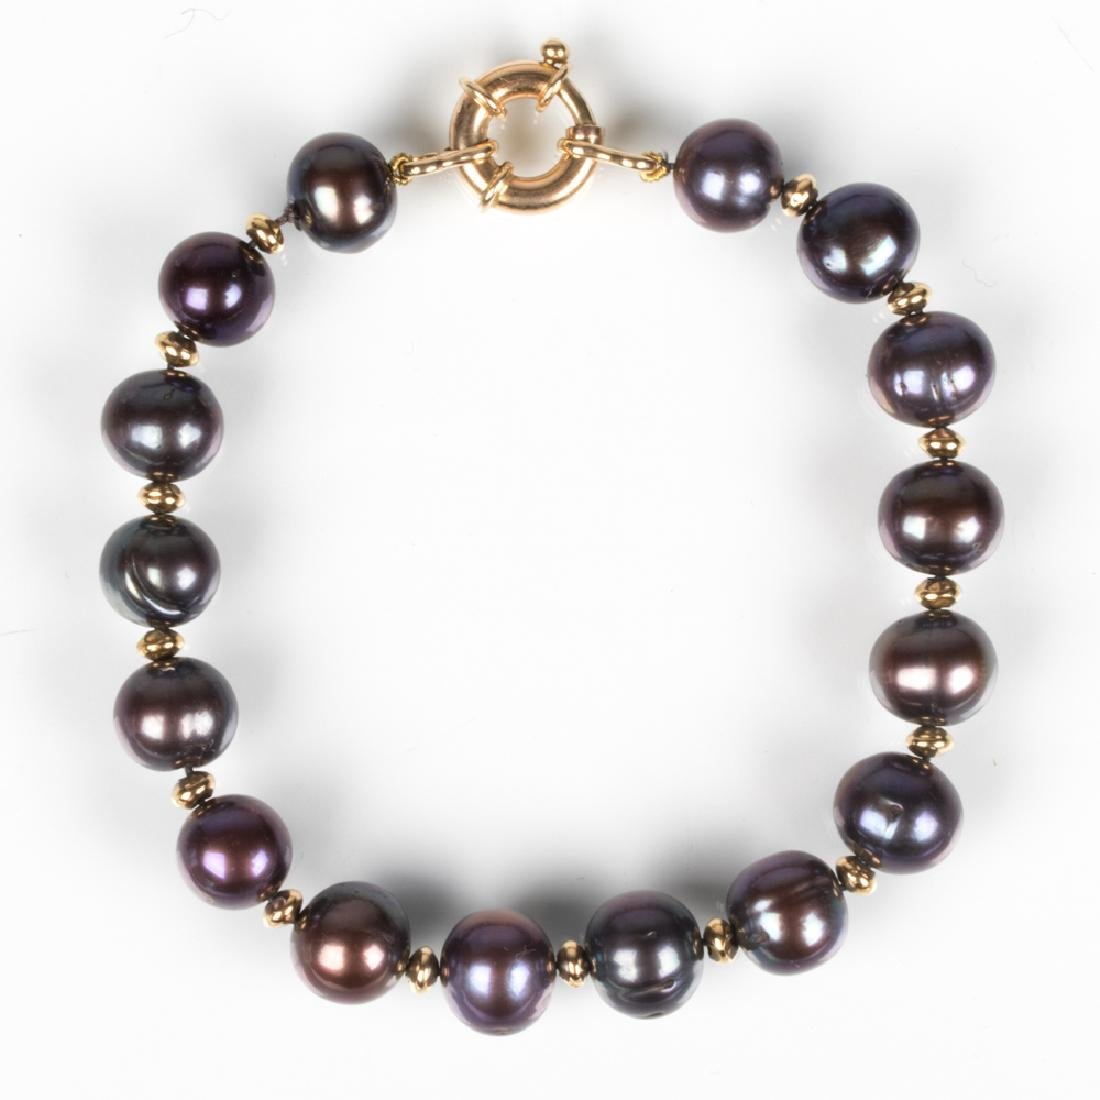 A 14kt. Yellow Gold and Black Cultured Pearl Bracelet,